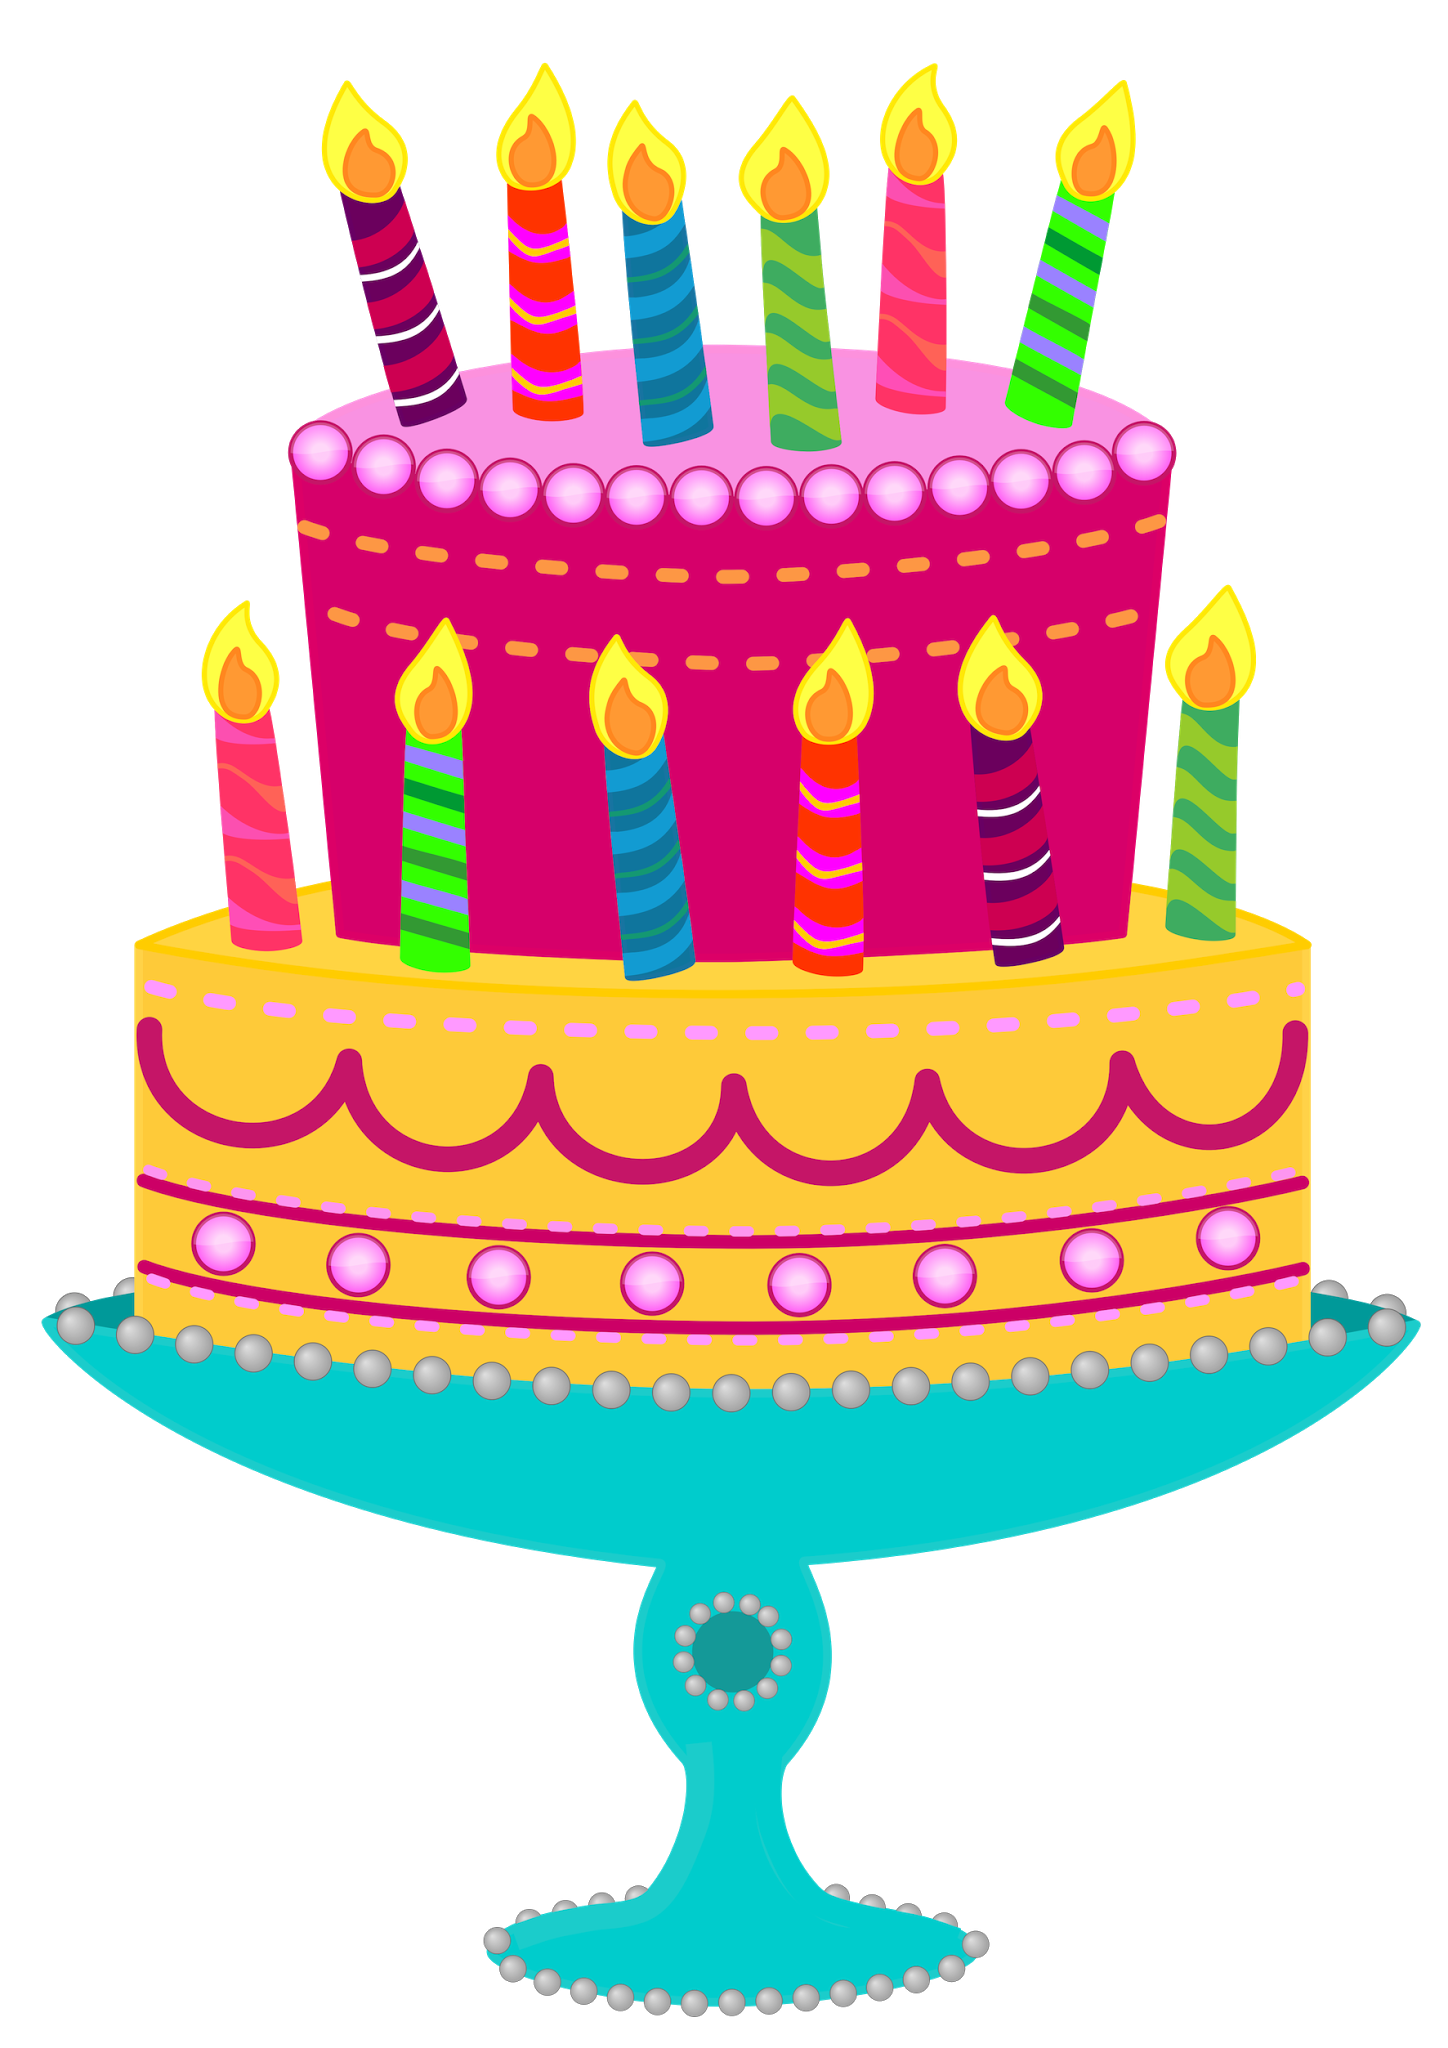 Birthday cake graphics clip art vector library Free Cake Images - Cliparts.co | Paper Images | Pinterest | Cake ... vector library